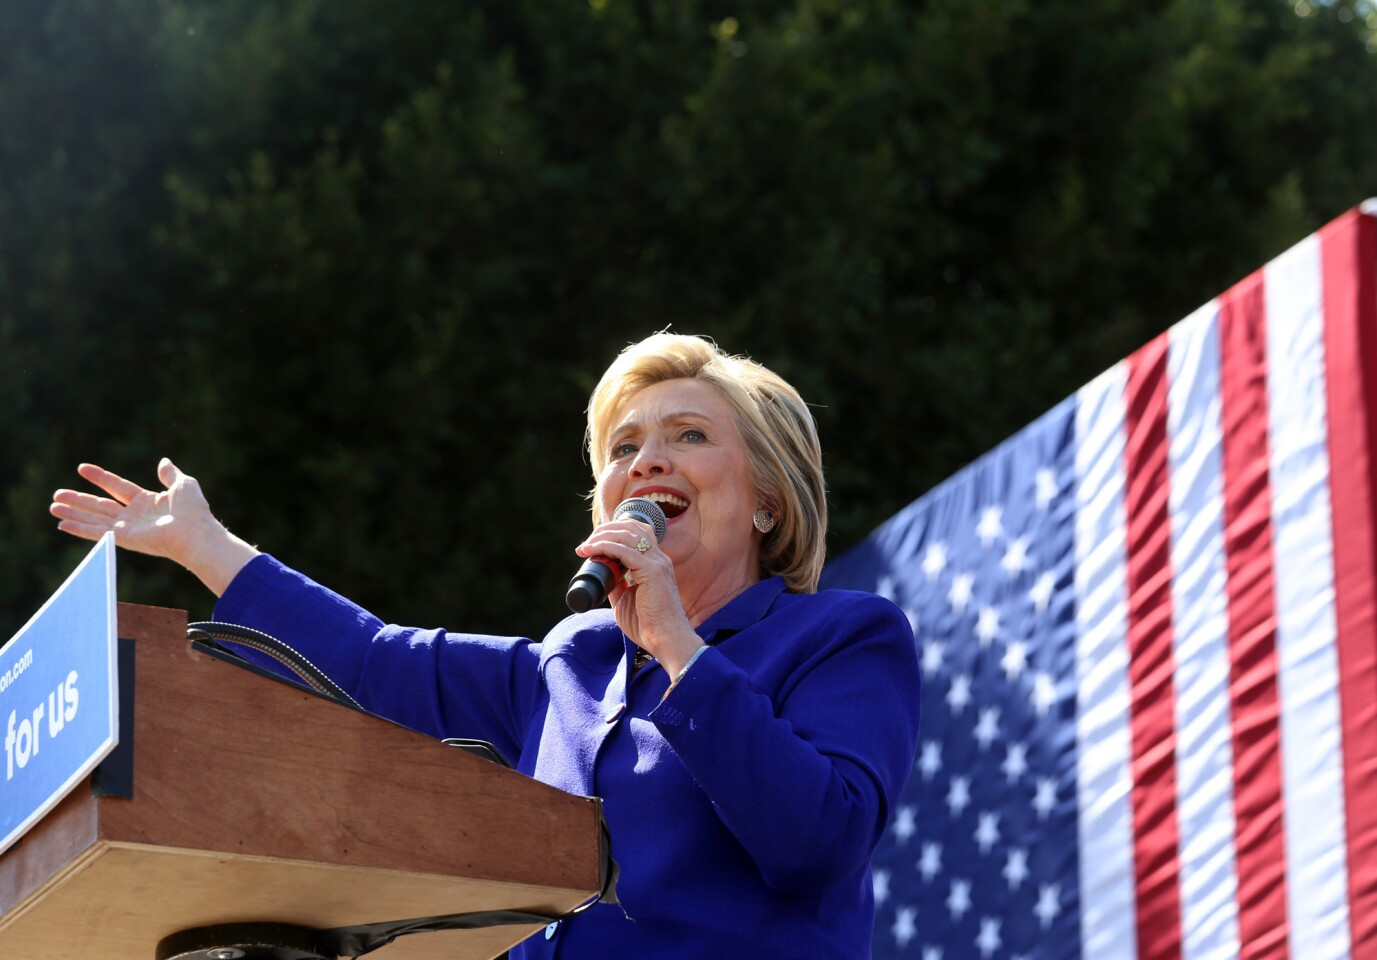 Democratic presidential candidate Hillary Clinton addresses supporters in the Los Angeles neighborhood of Leimert Park.